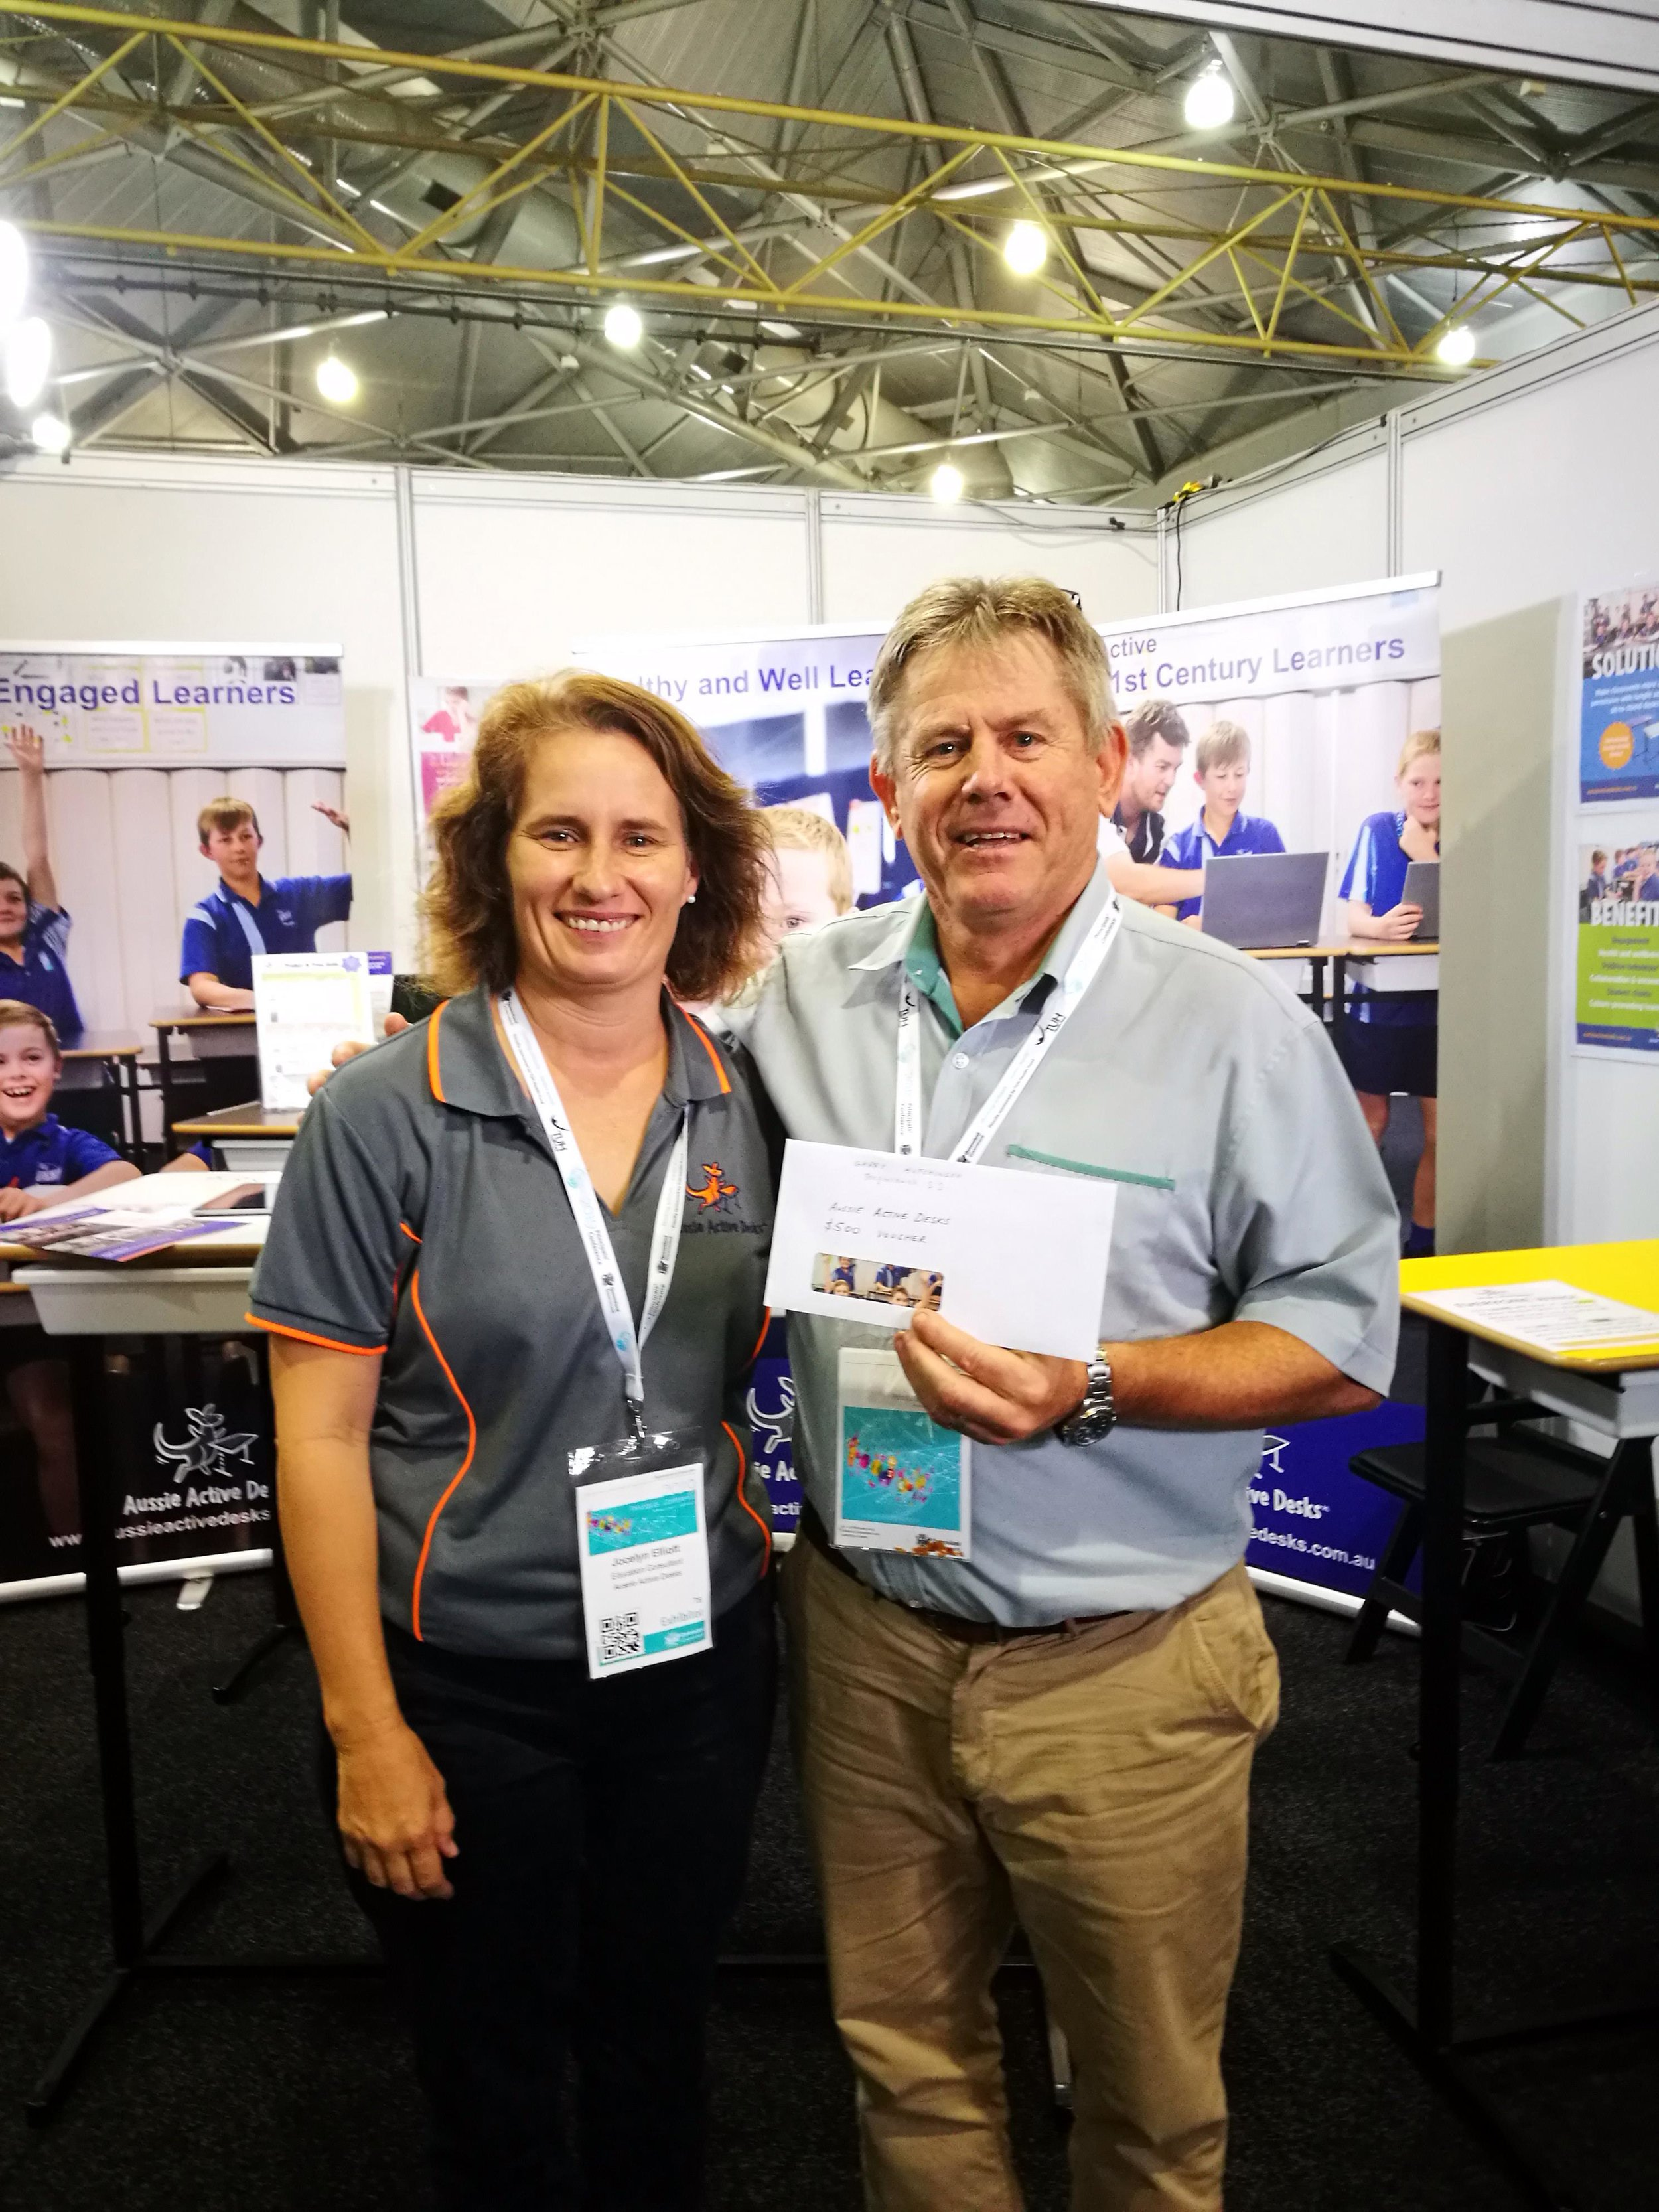 Principal Garry Hutchinson (right) from Toogoolawah State School (pictured with AAD team member) won a $500 AAD gift voucher at the 2019 Principals' Conference.